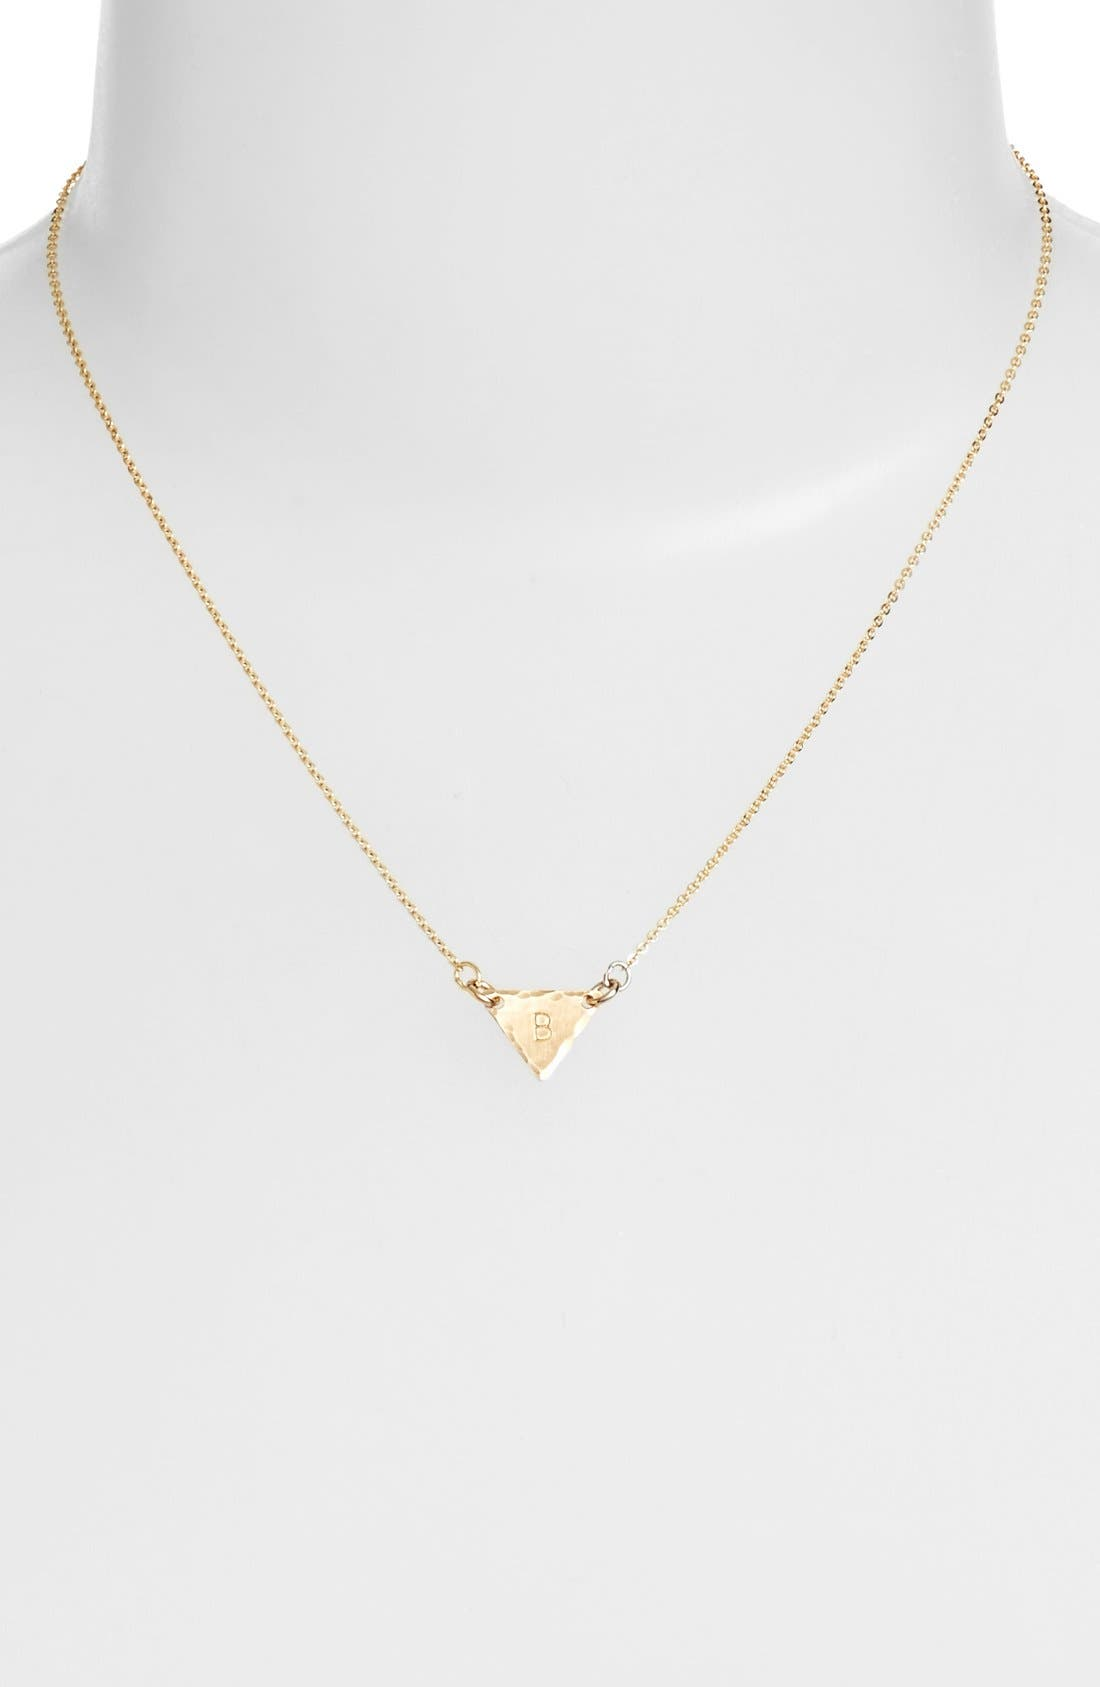 14k-Gold Fill Initial Triangle Necklace,                             Alternate thumbnail 28, color,